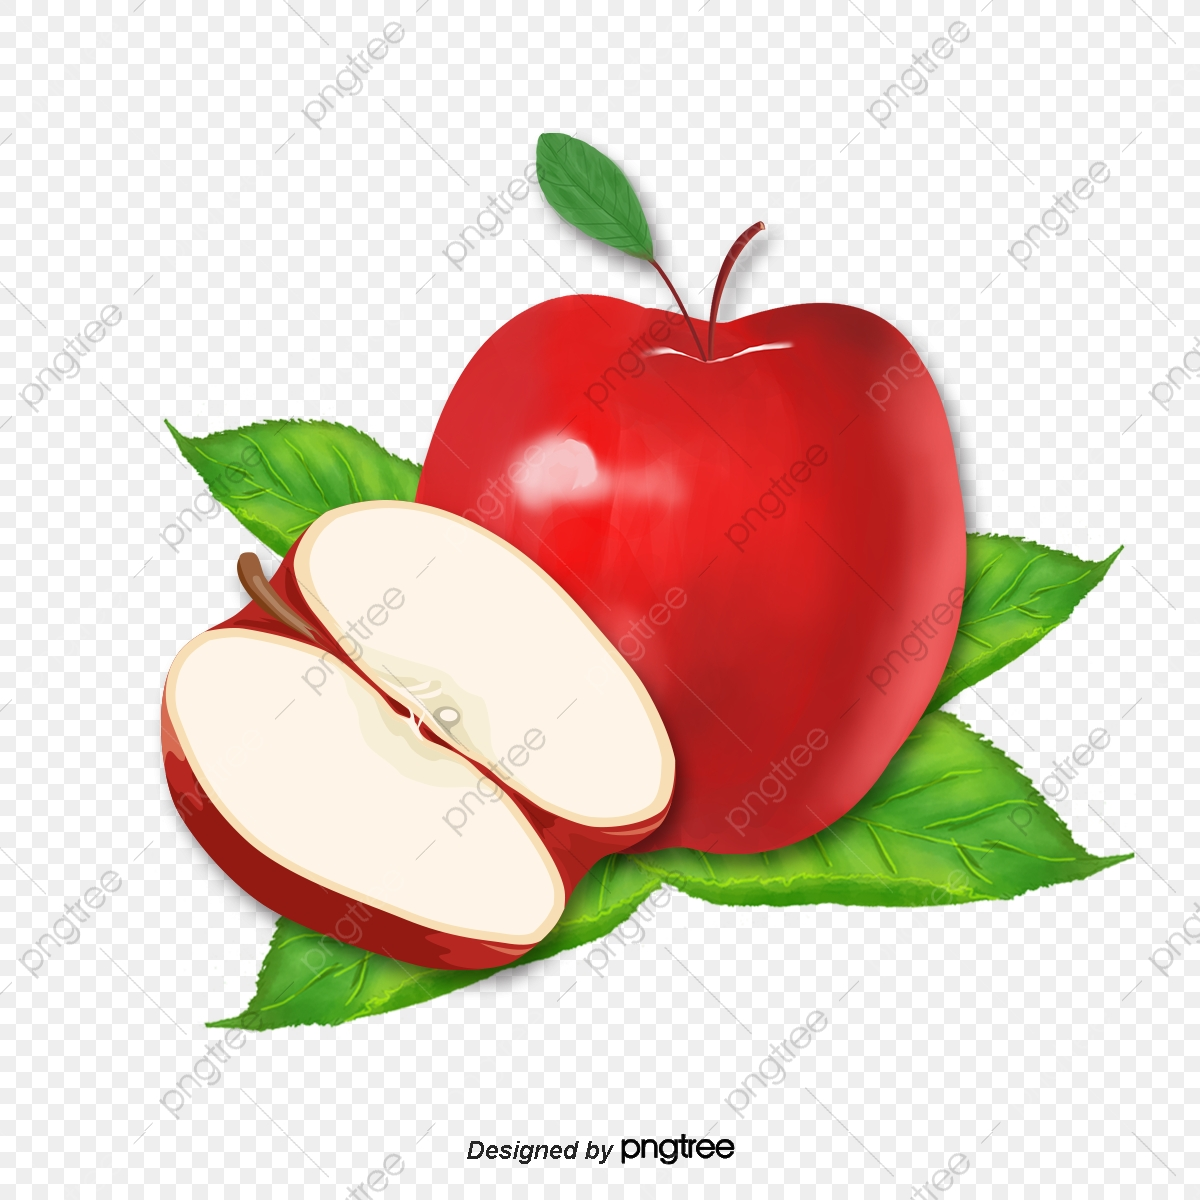 Apple Clipart Download Free Transparent Png Format Clipart Images On Pngtree